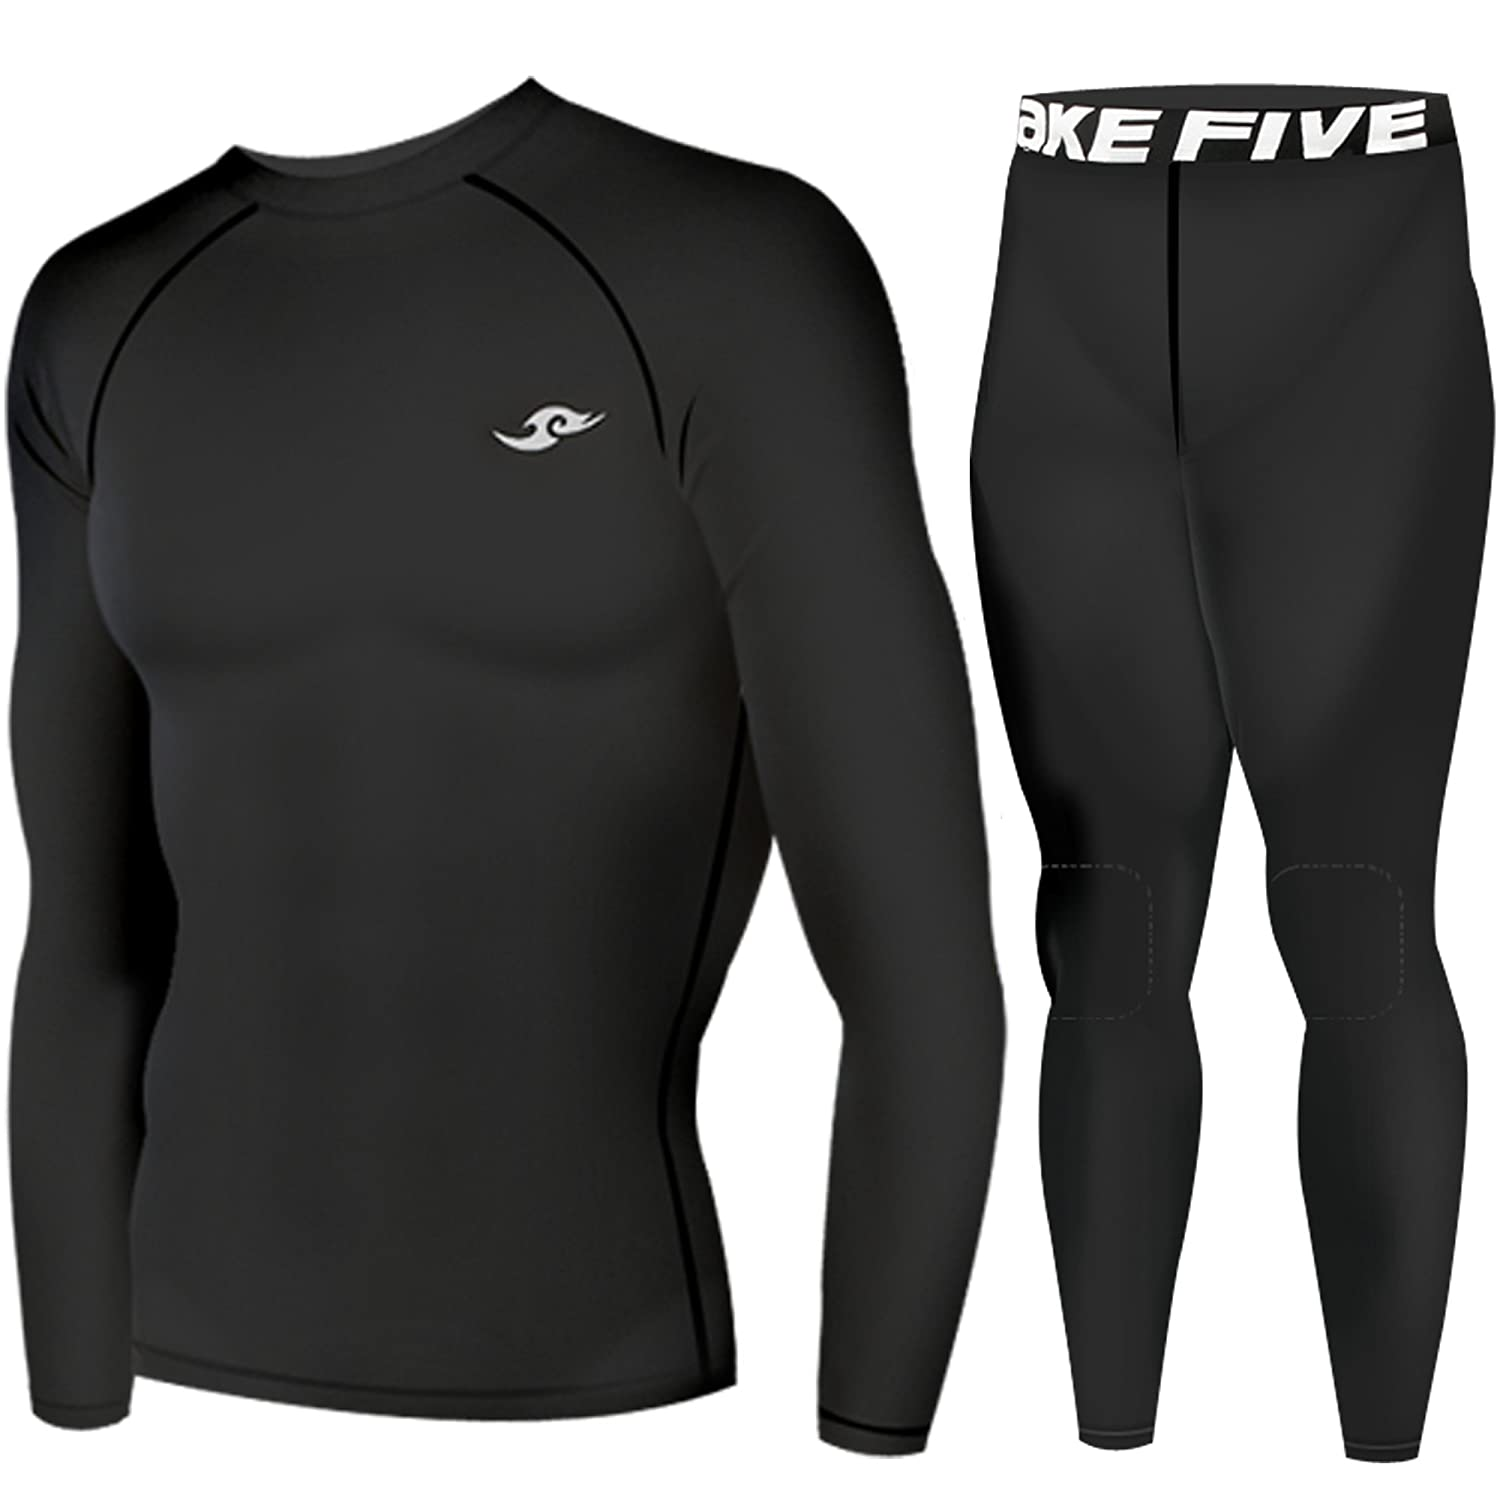 Winter Compression Base Layer Warm Round Neck Top & Knee Pad Pants Black SET effective image compression using evolved wavelets